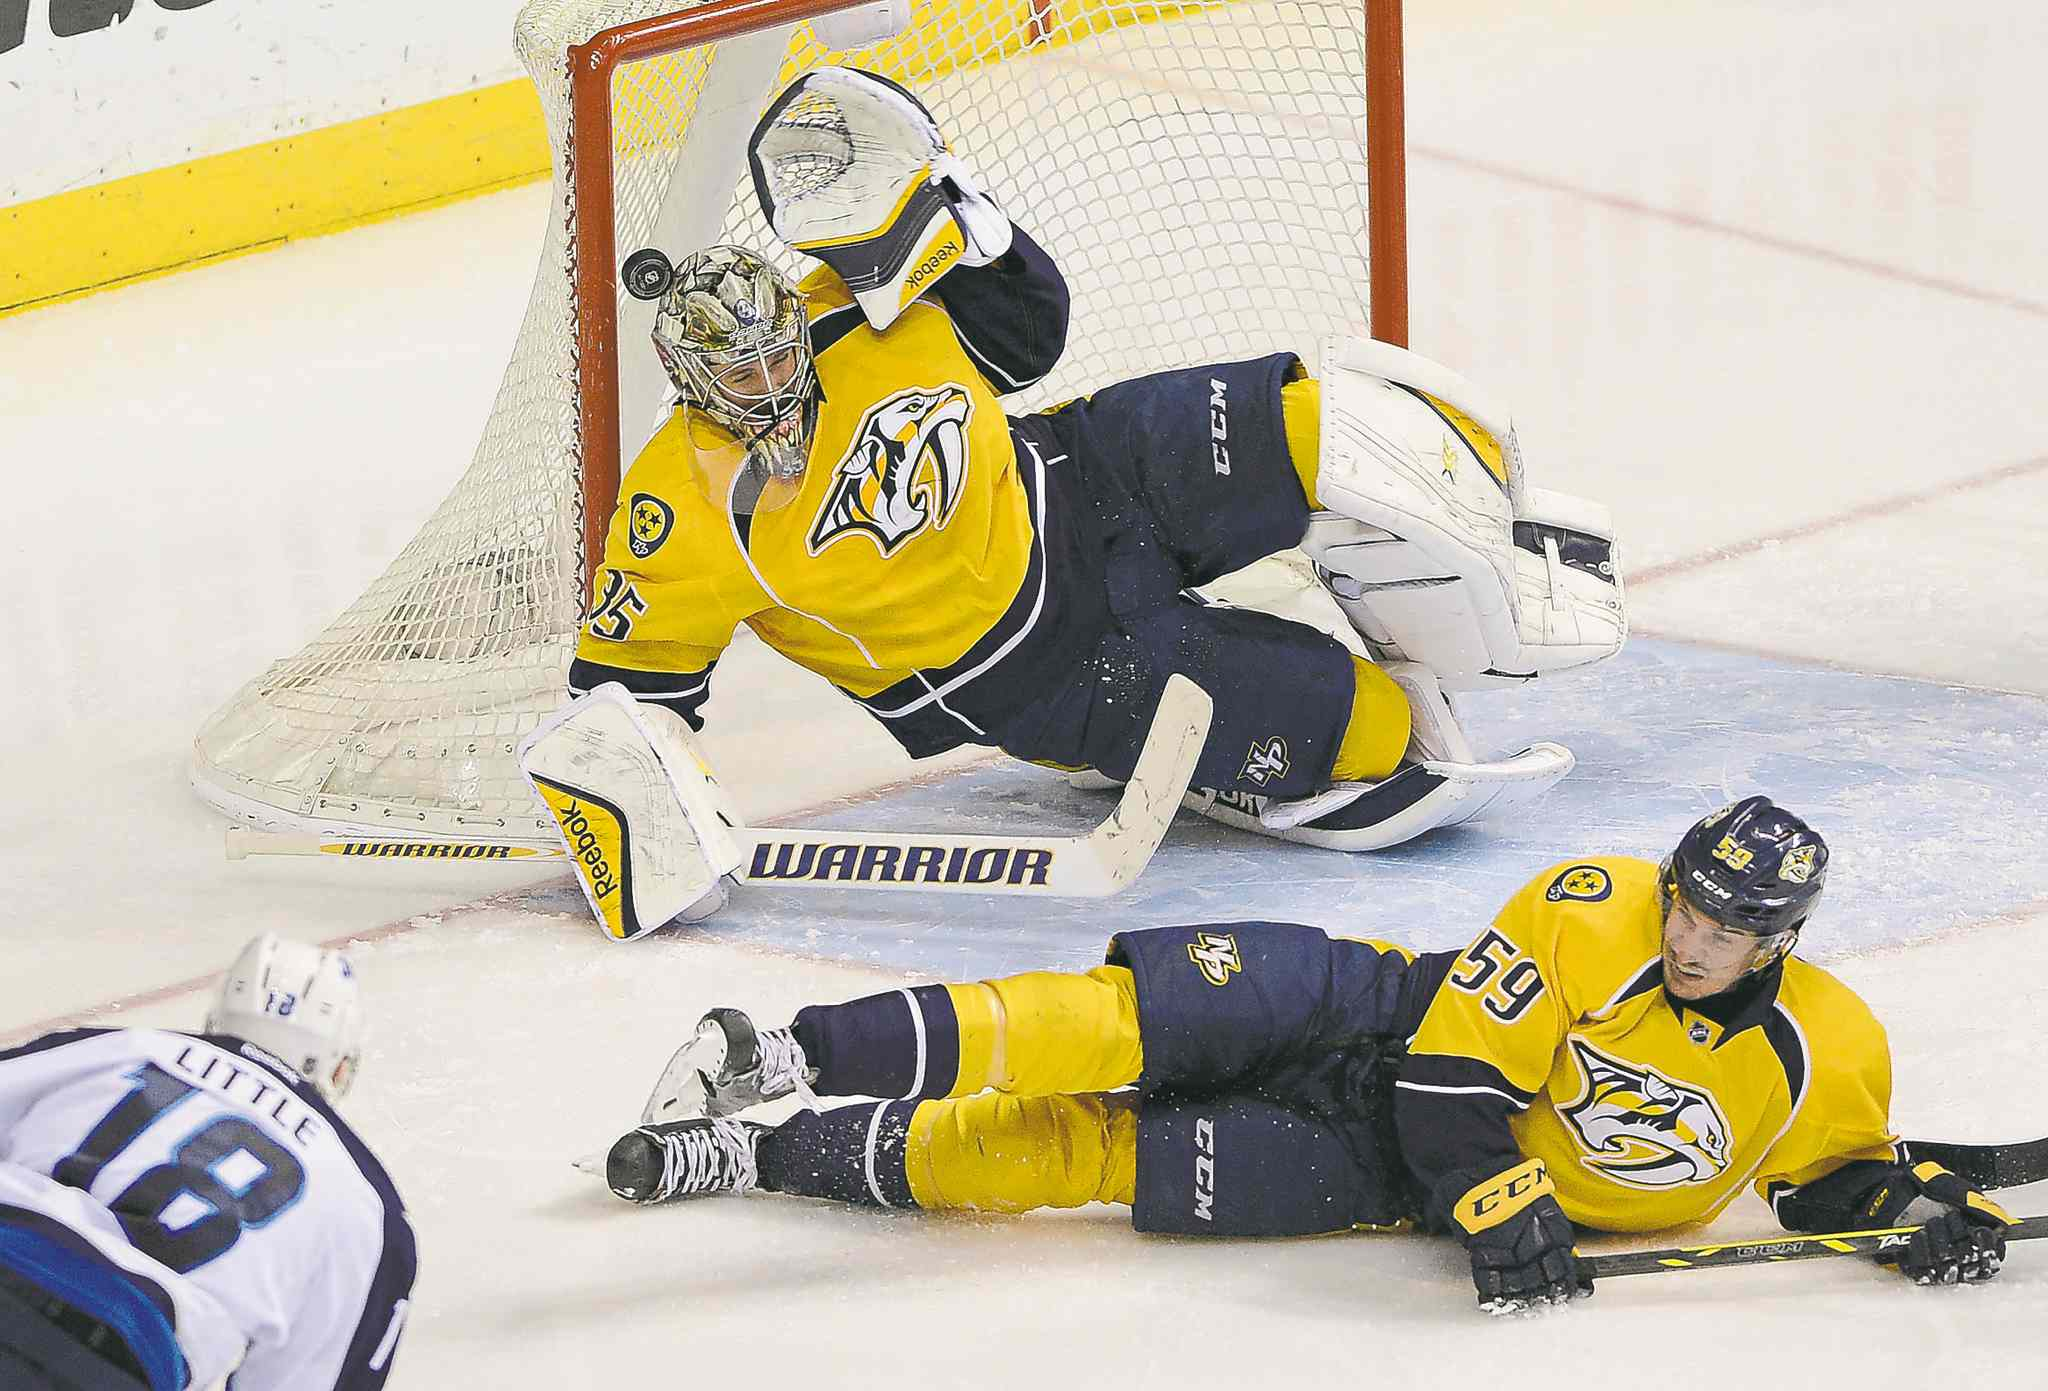 Mark Zaleski / the associated pressPredators goalie Pekka Rinne makes a diving stop on a shot from Jets centre Bryan Little, who drove the puck over blue-liner Roman Josi going for the block on the play.